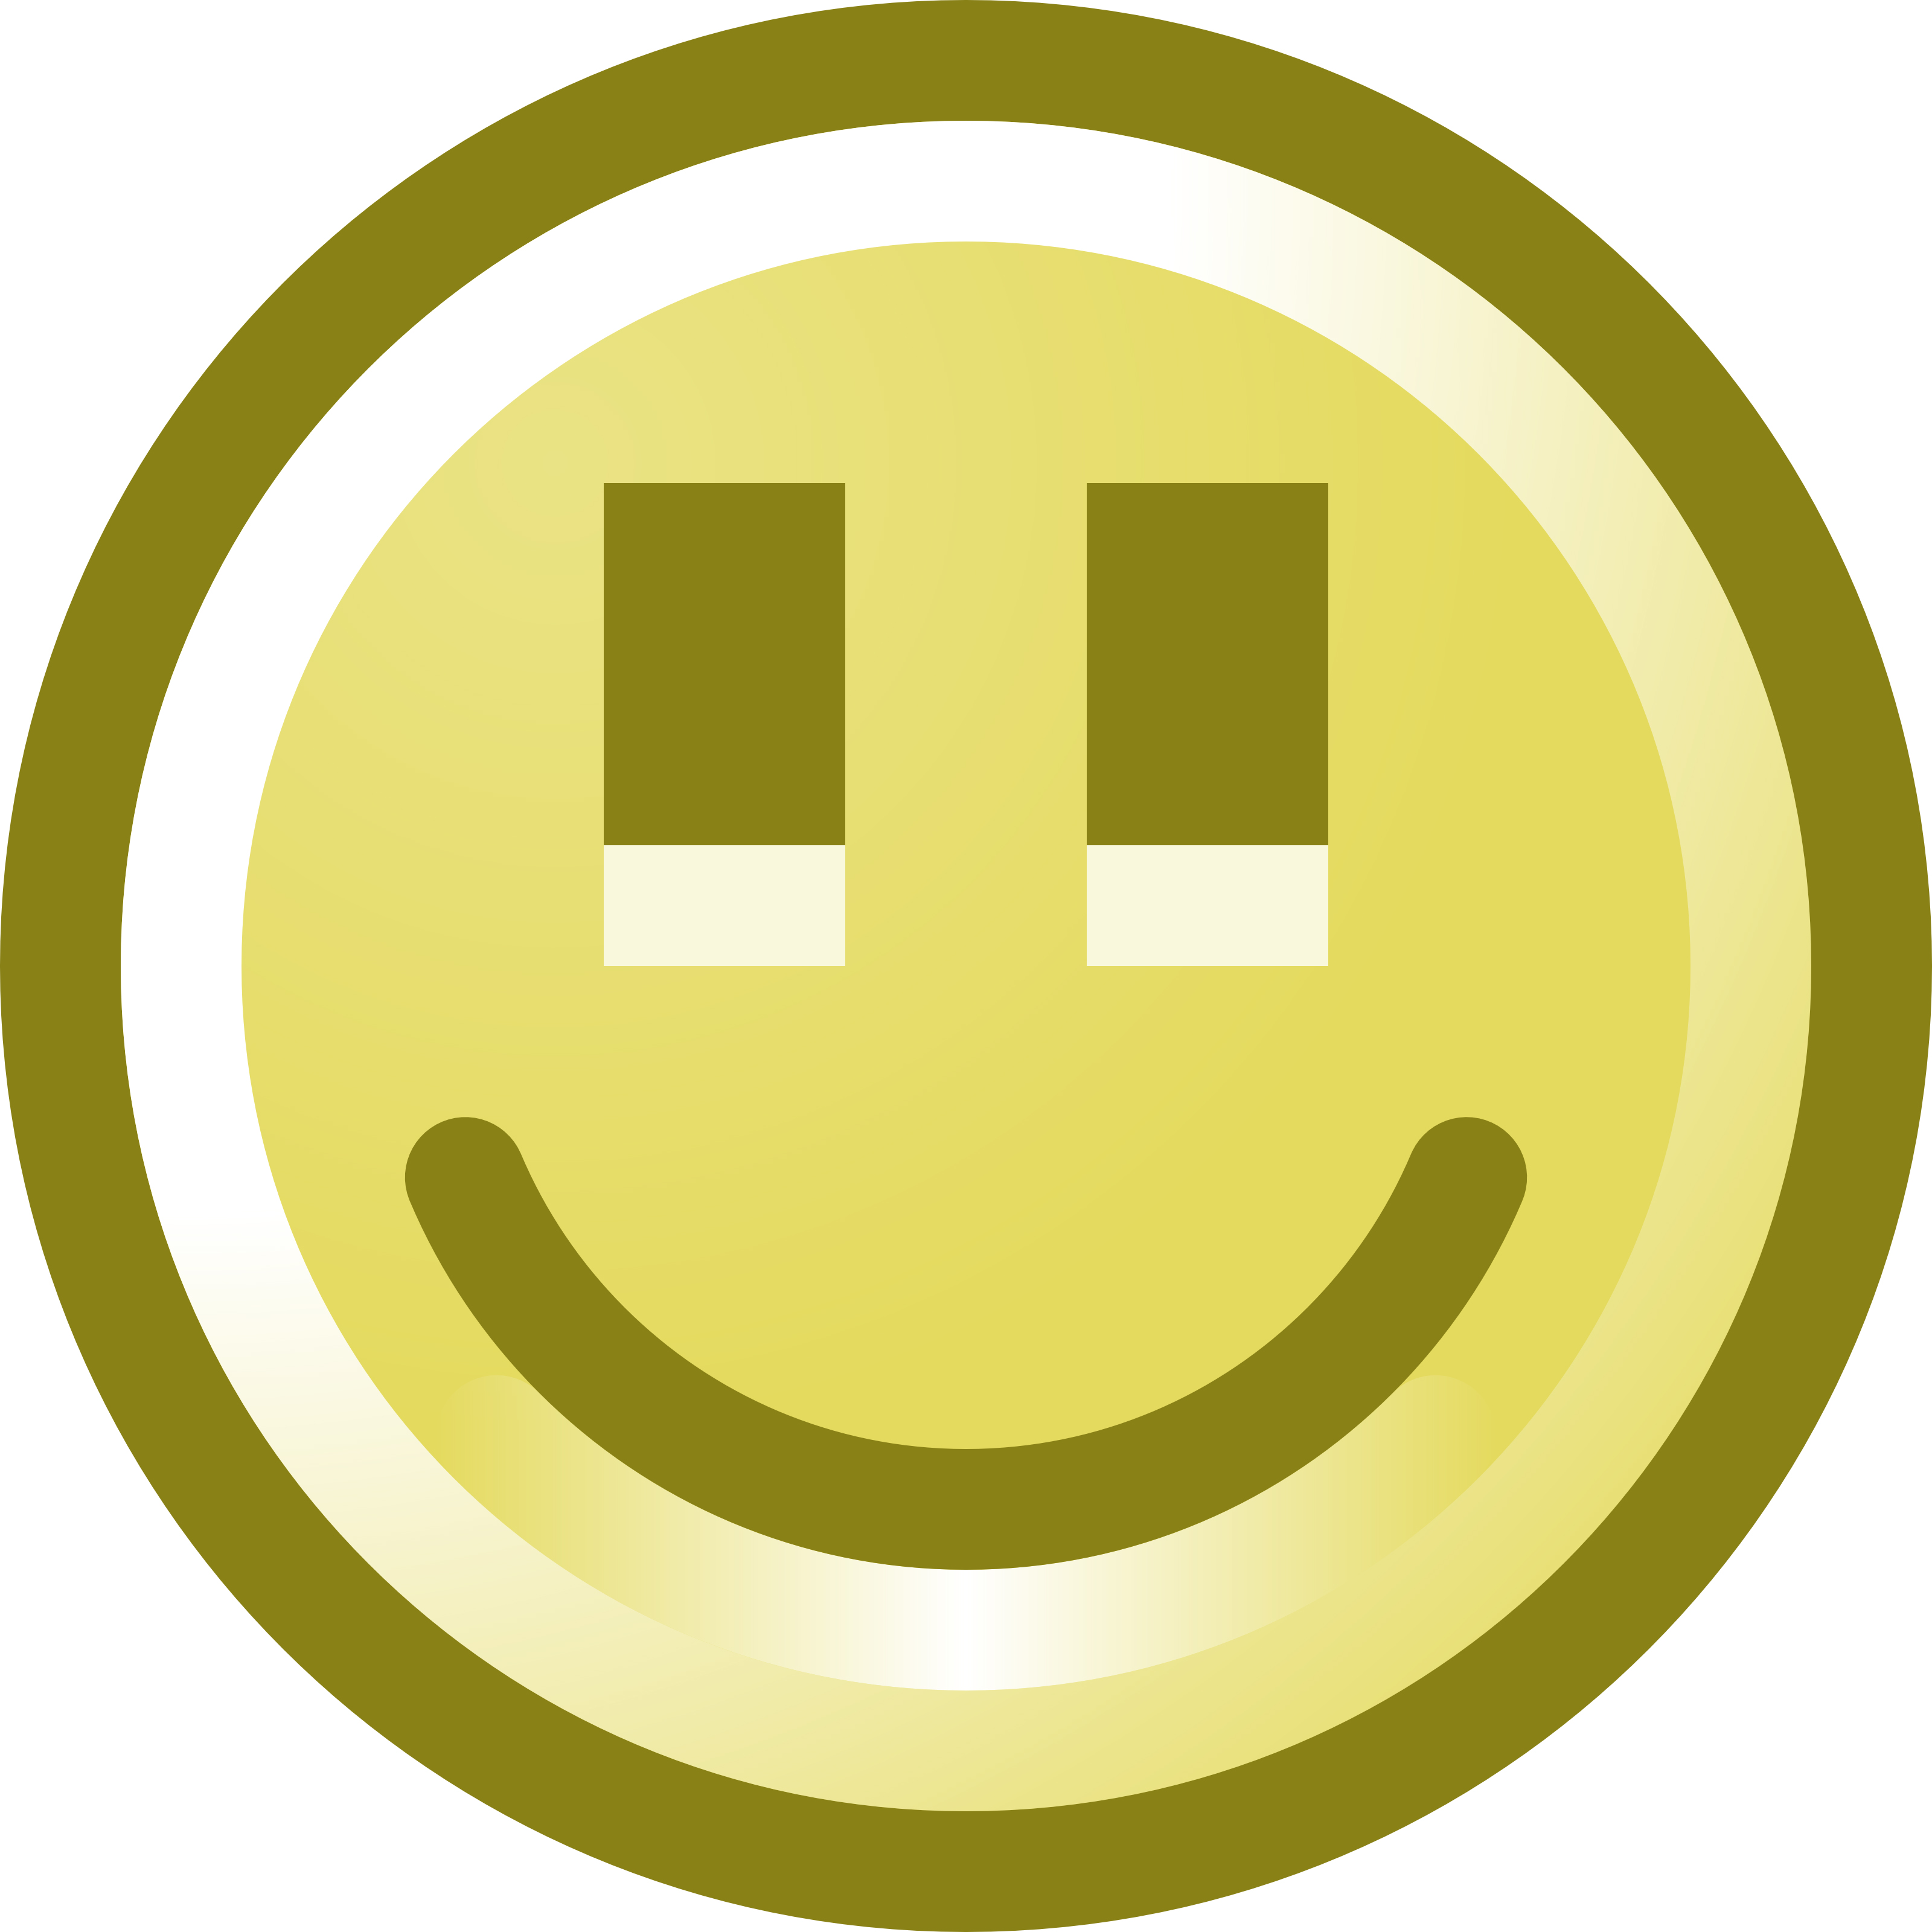 Square clipart smiley face Clipart Face Smiley Clipart Laughing